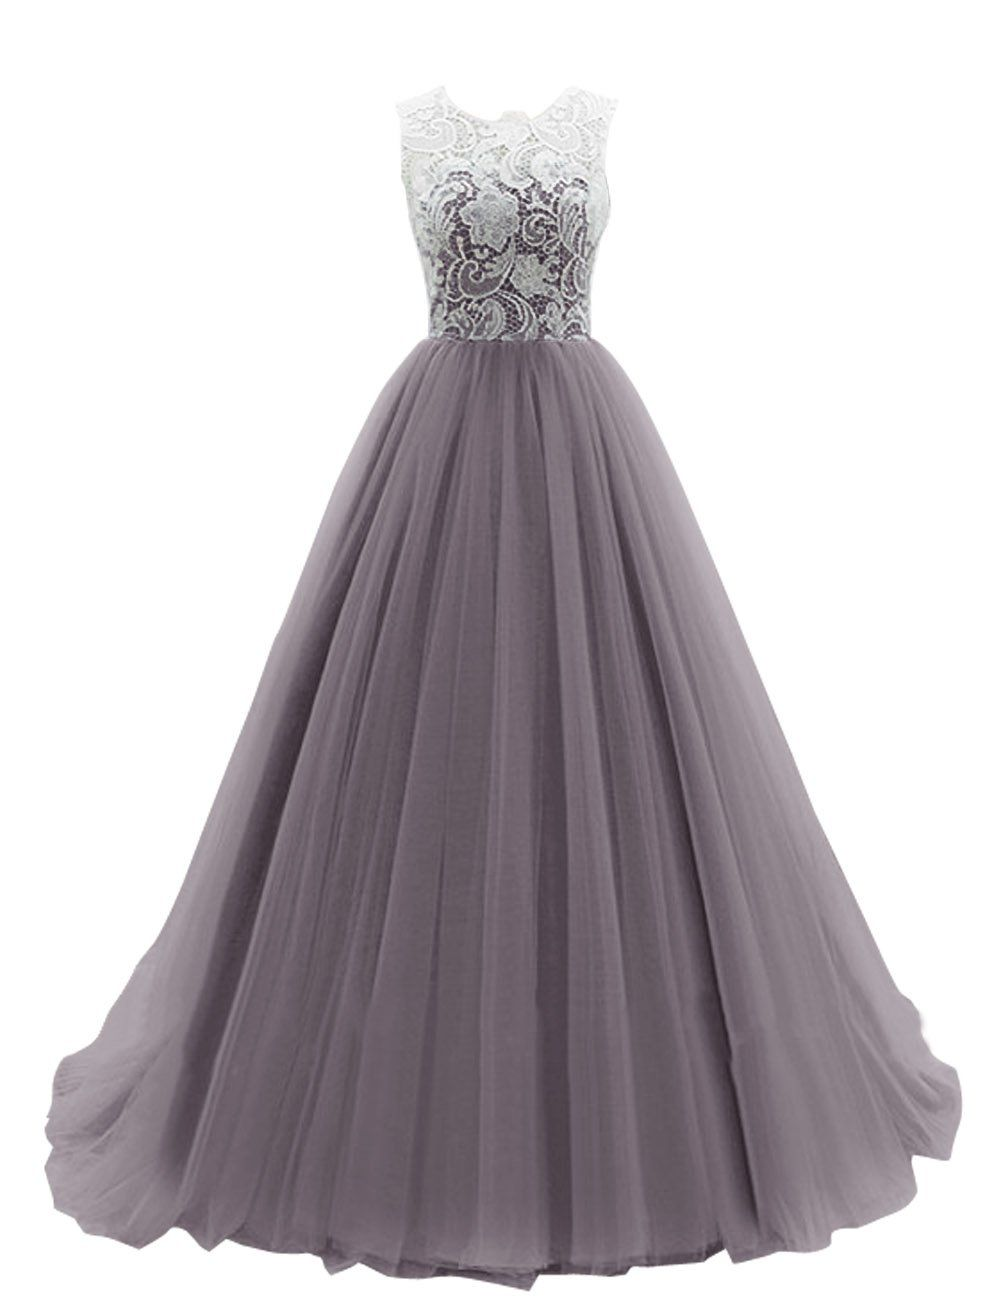 Dresstells womenus long tulle prom dress dance gown with lace grey